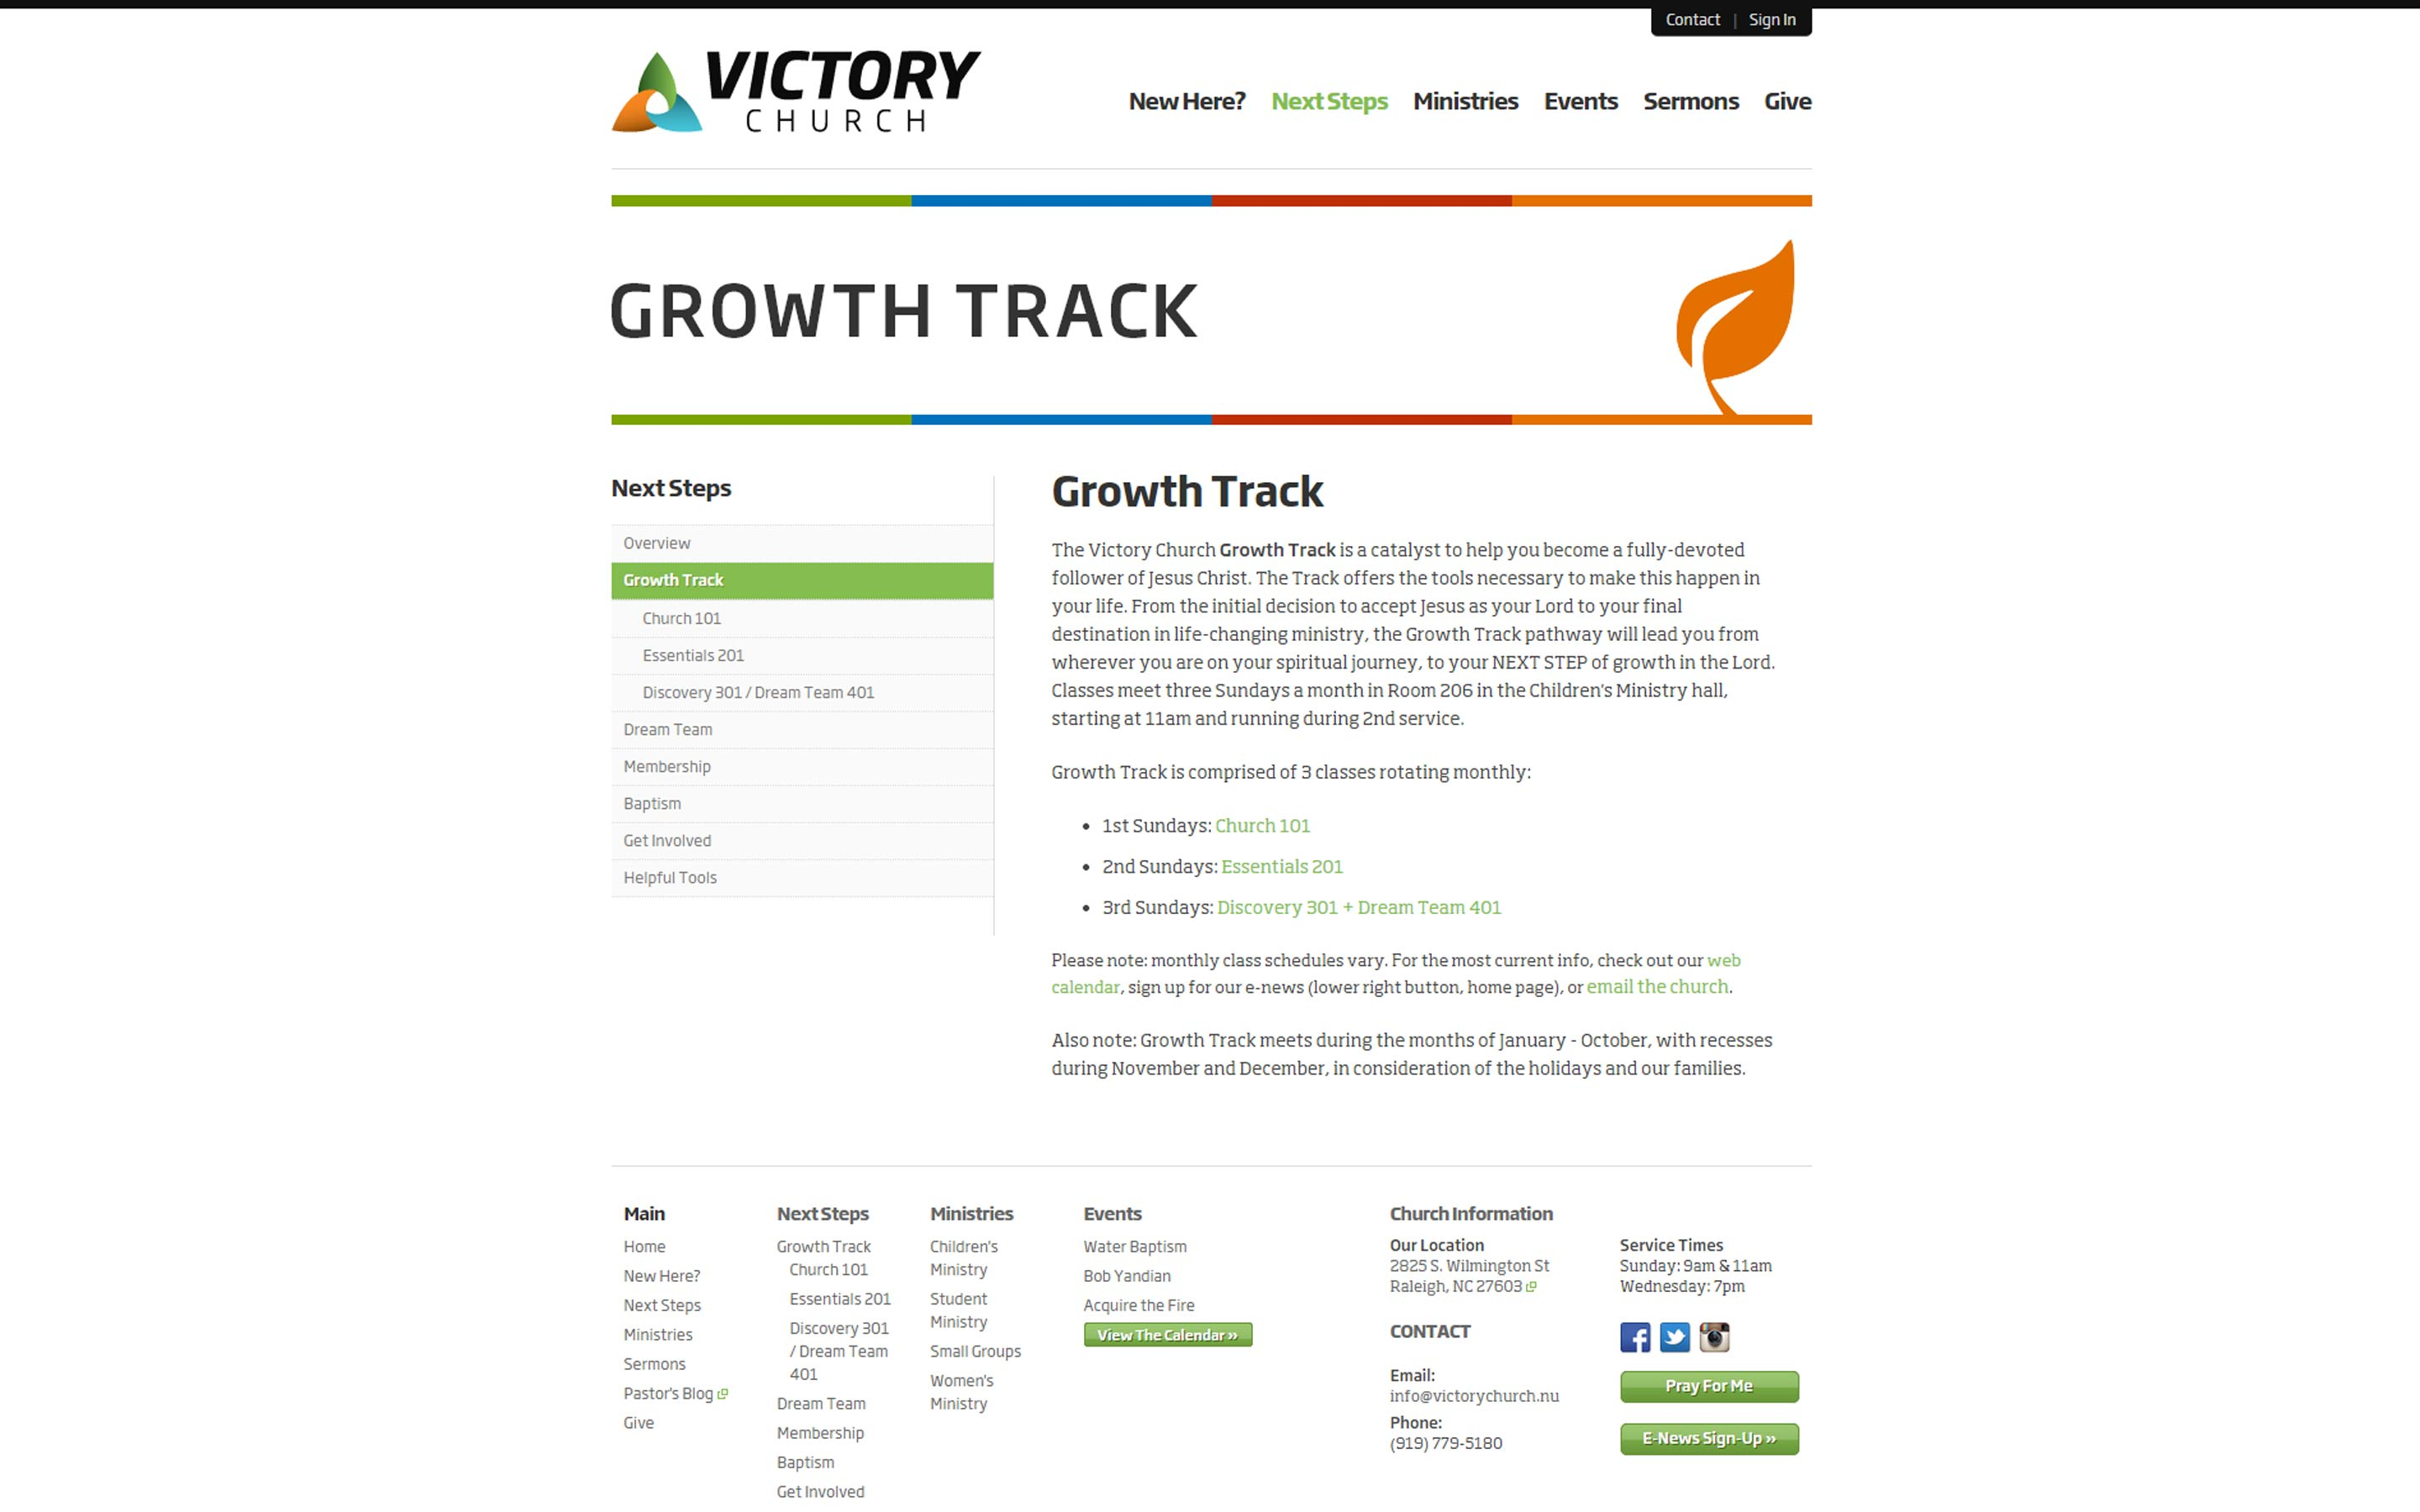 victorychurch.nu_GrowthTrack_Portfolio